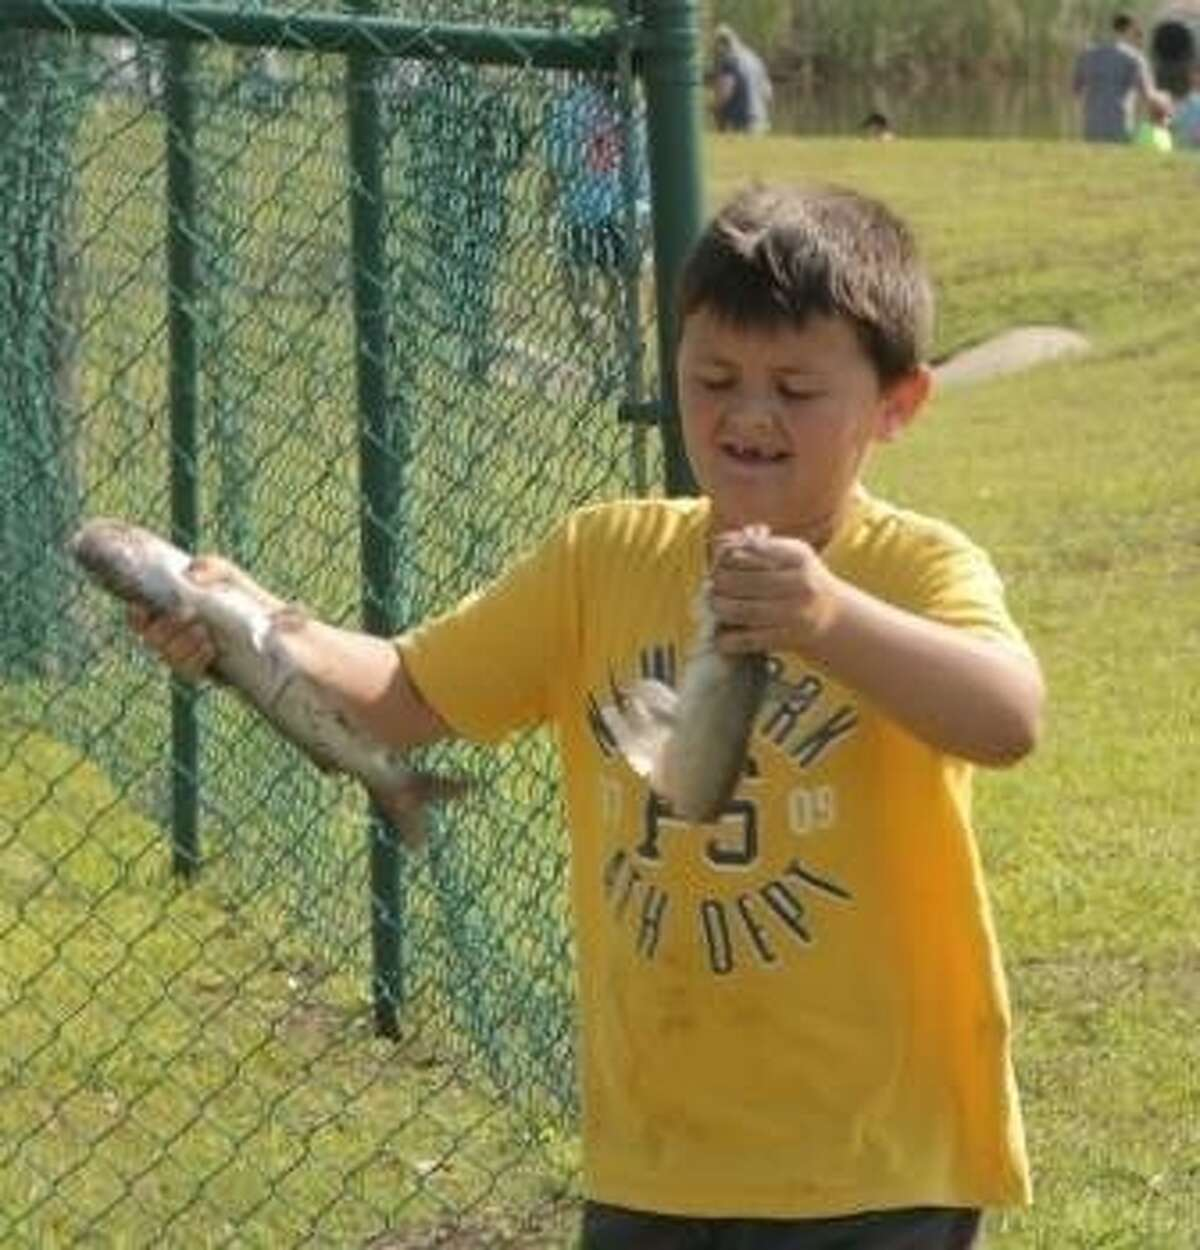 This year's Friendswood Youth Fishing Derby is Saturday, May 2 at the Centennial Park Pond.